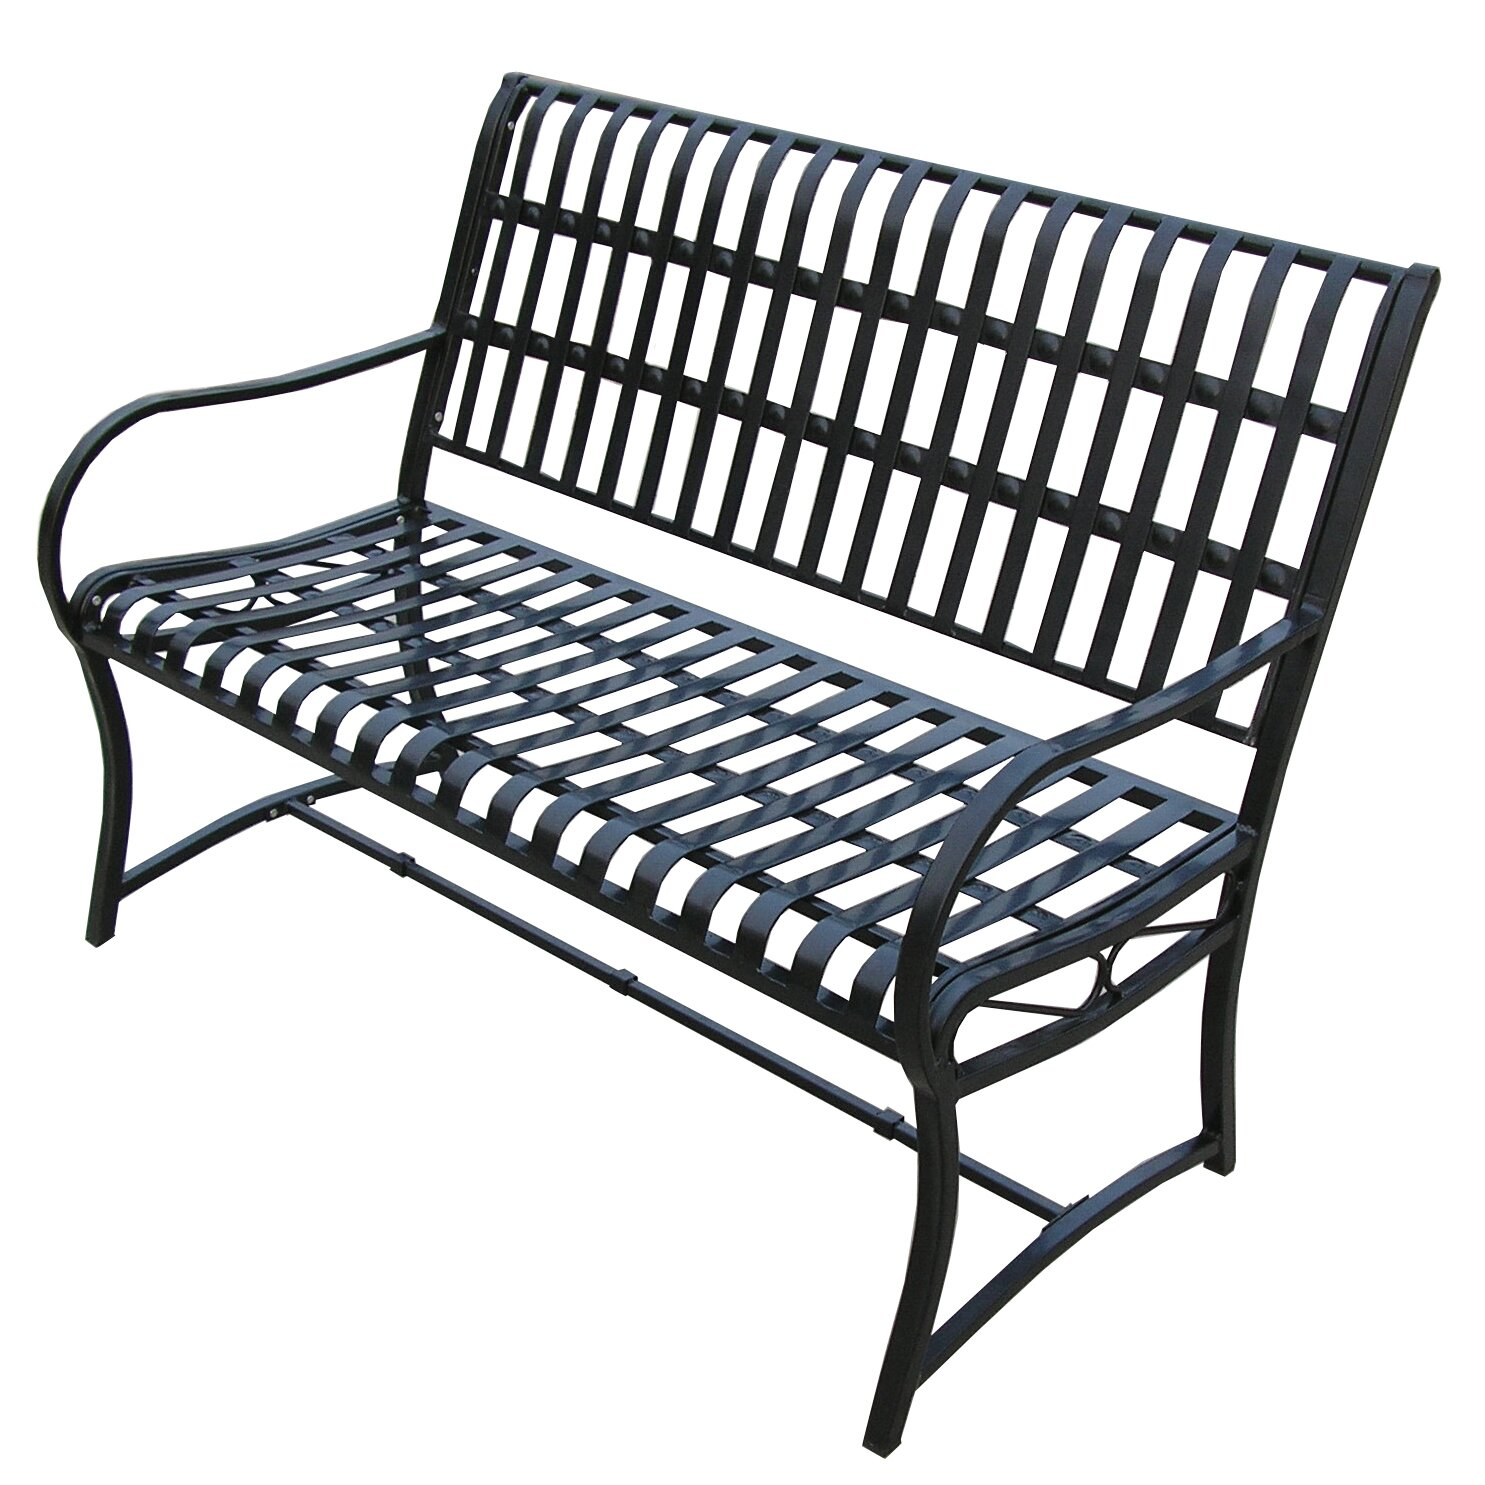 Oakland Living Noble Iron Garden Bench Reviews Wayfair